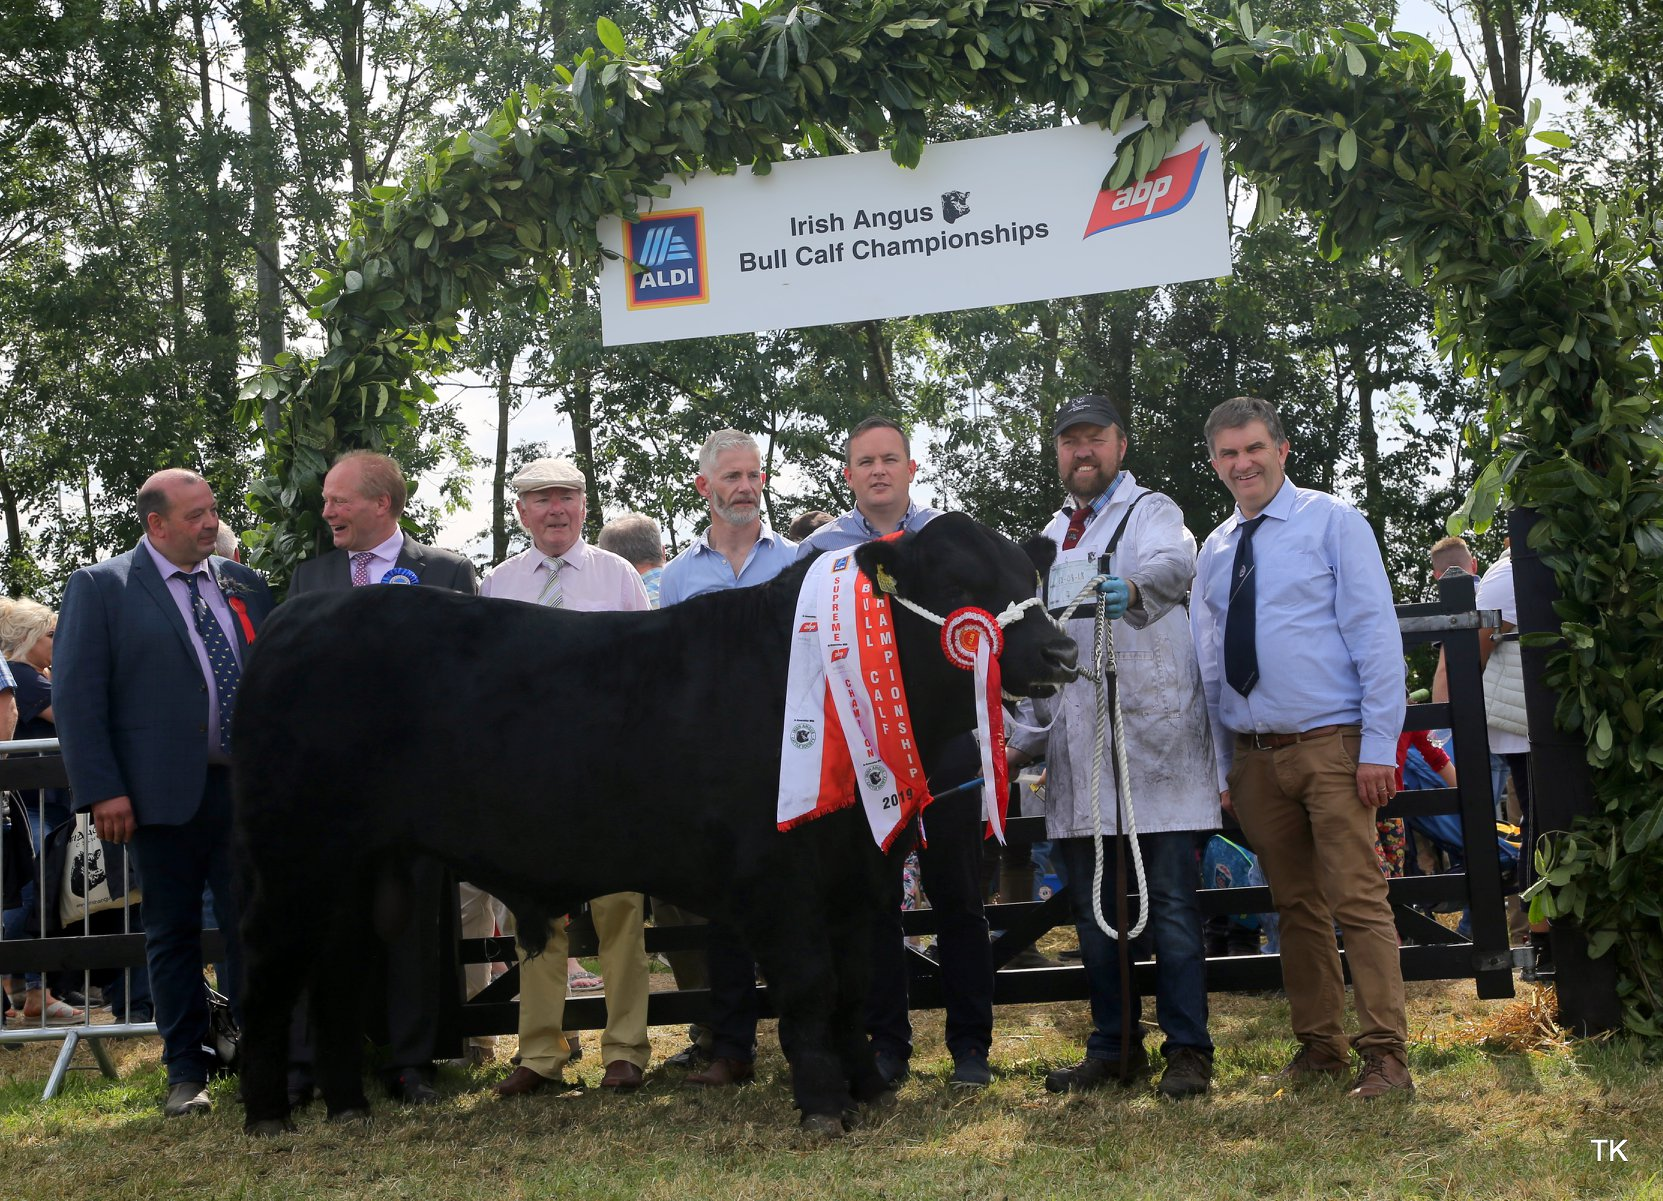 Aldi Irish Angus All Ireland Bull Calf Championship 2019